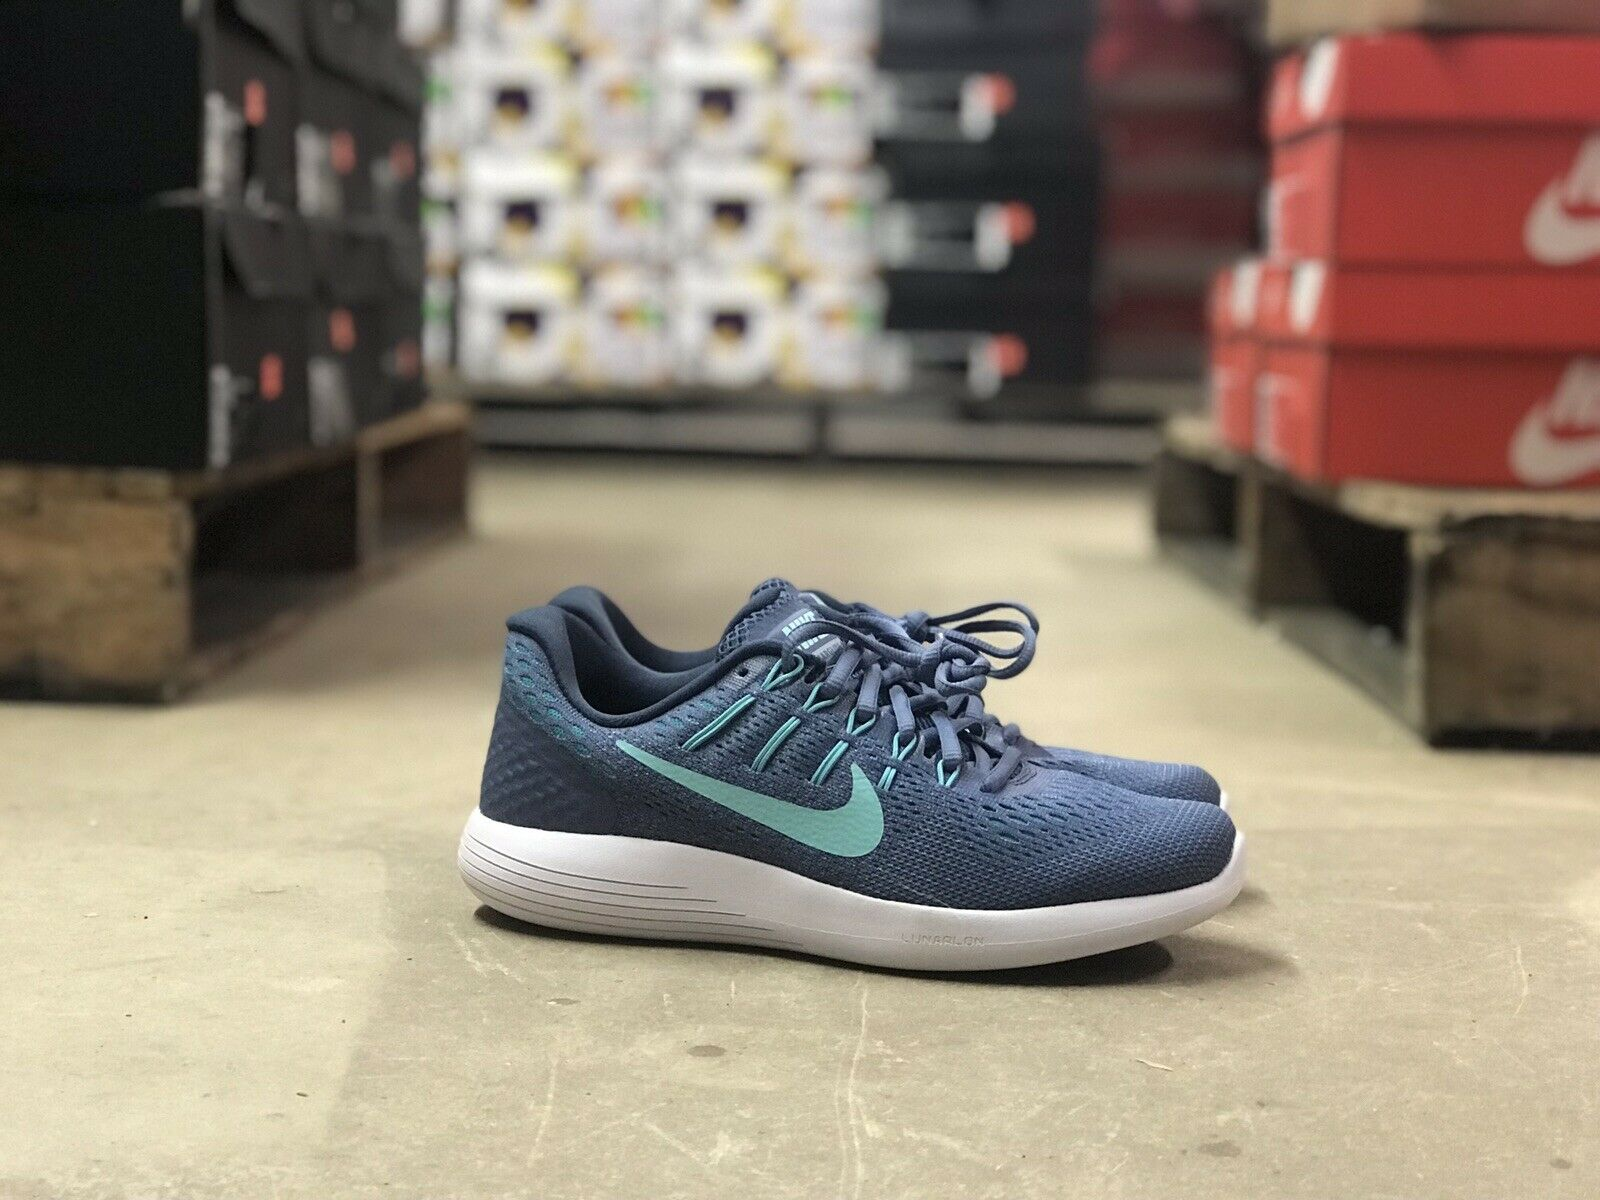 Nike Lunarglide 8 Womens Running shoes bluee Teal White AA8677-400 Size 6